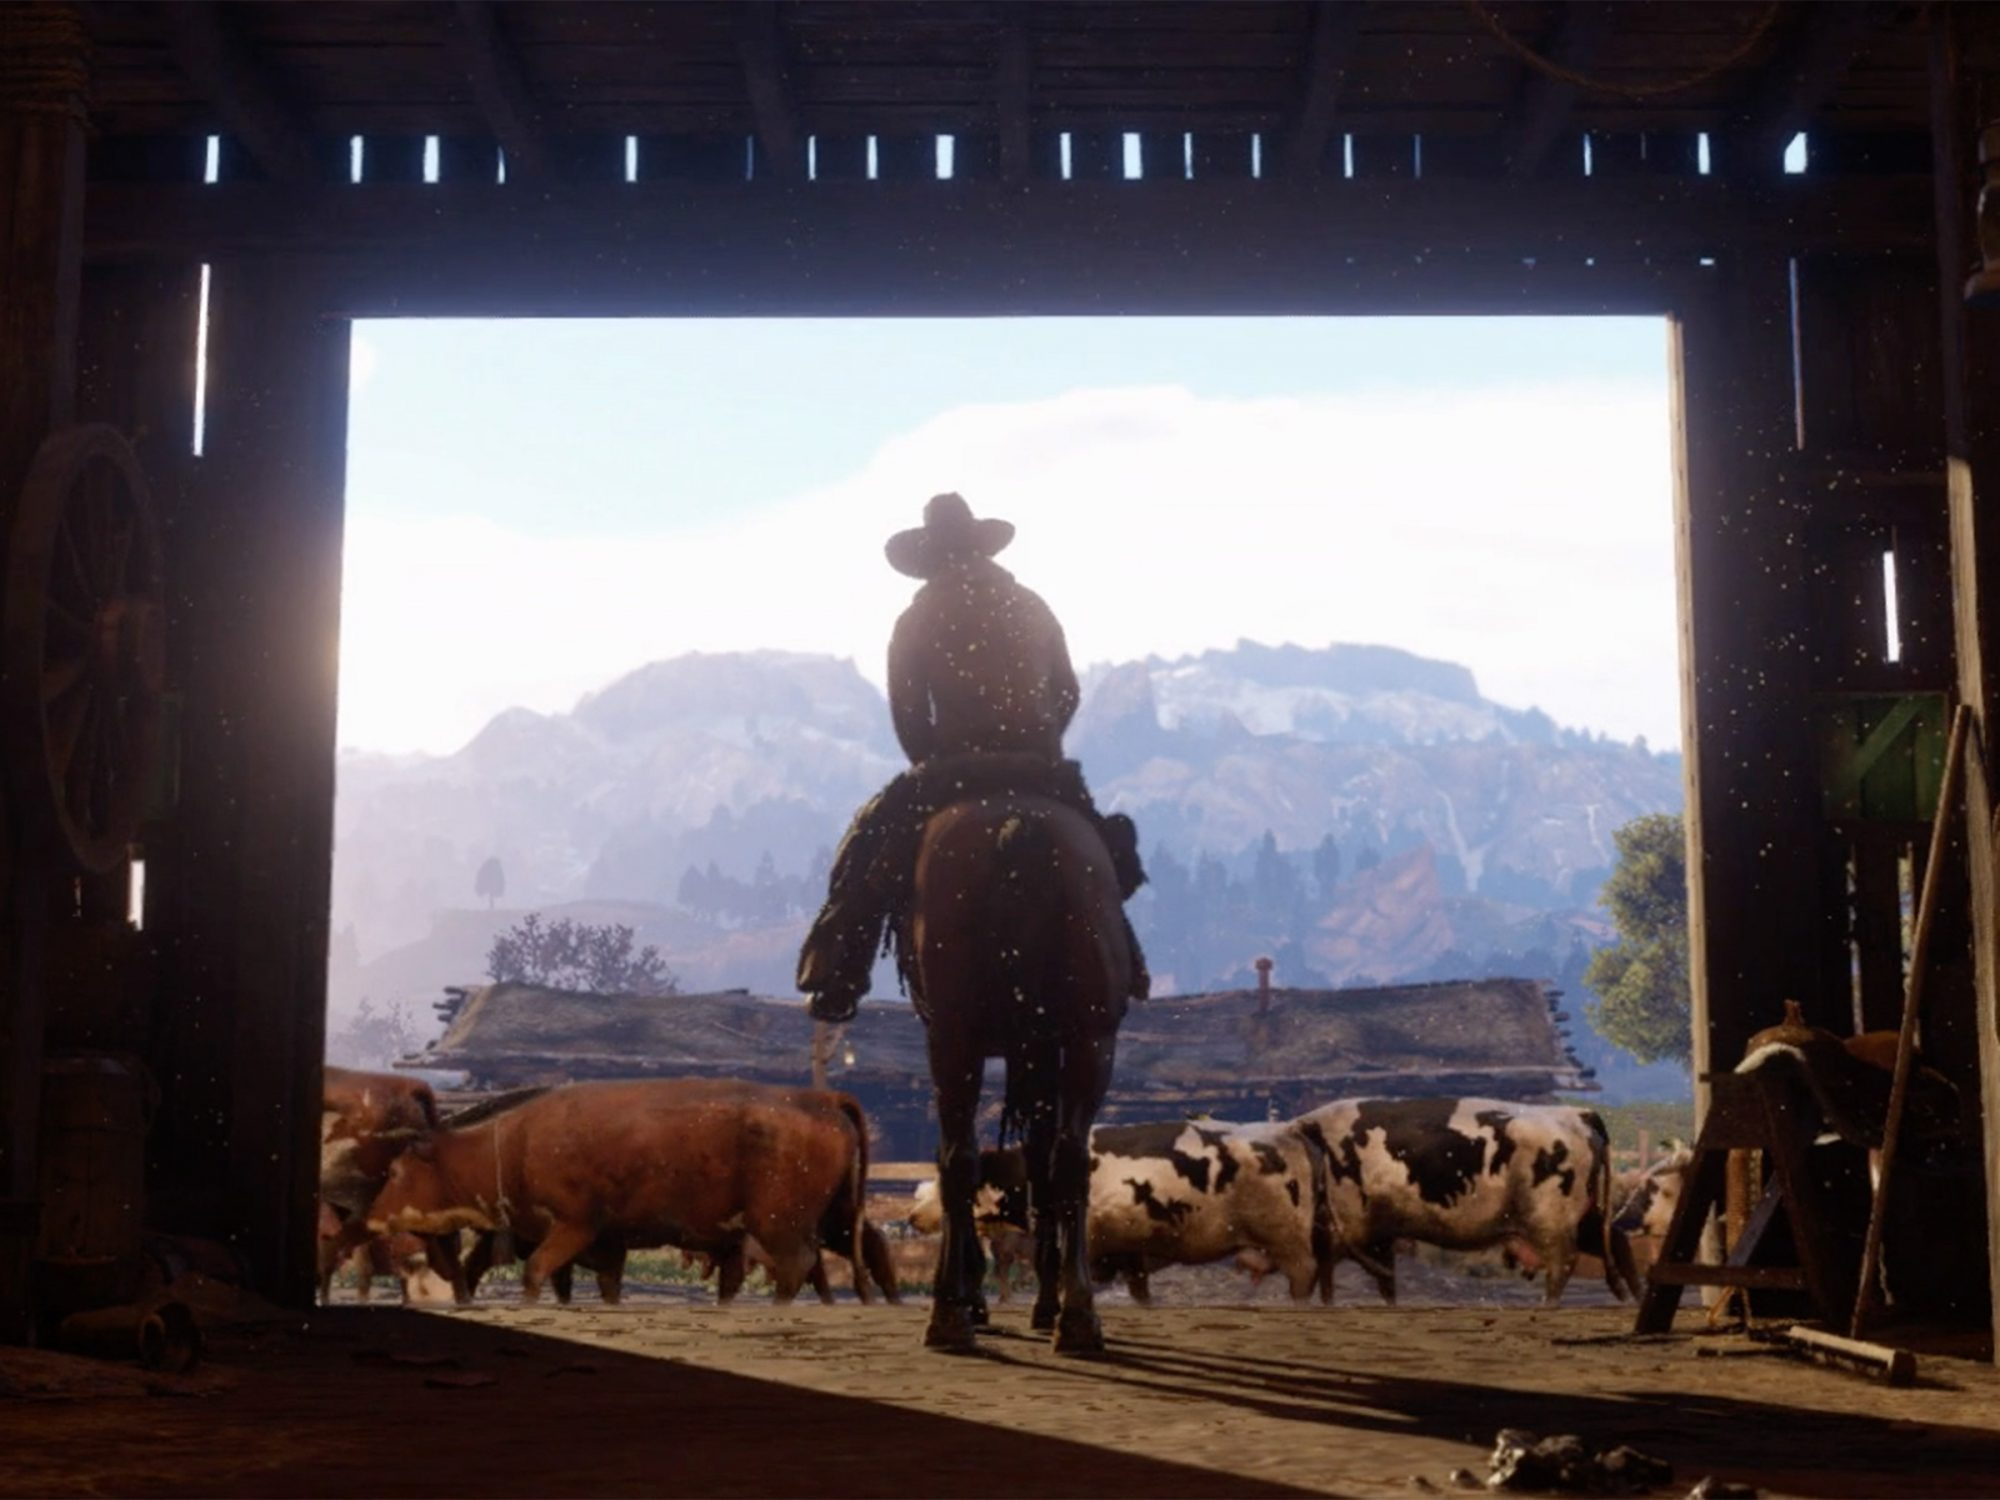 2. Red Dead Redemption 2 (Multiplatform; Fall 2017)